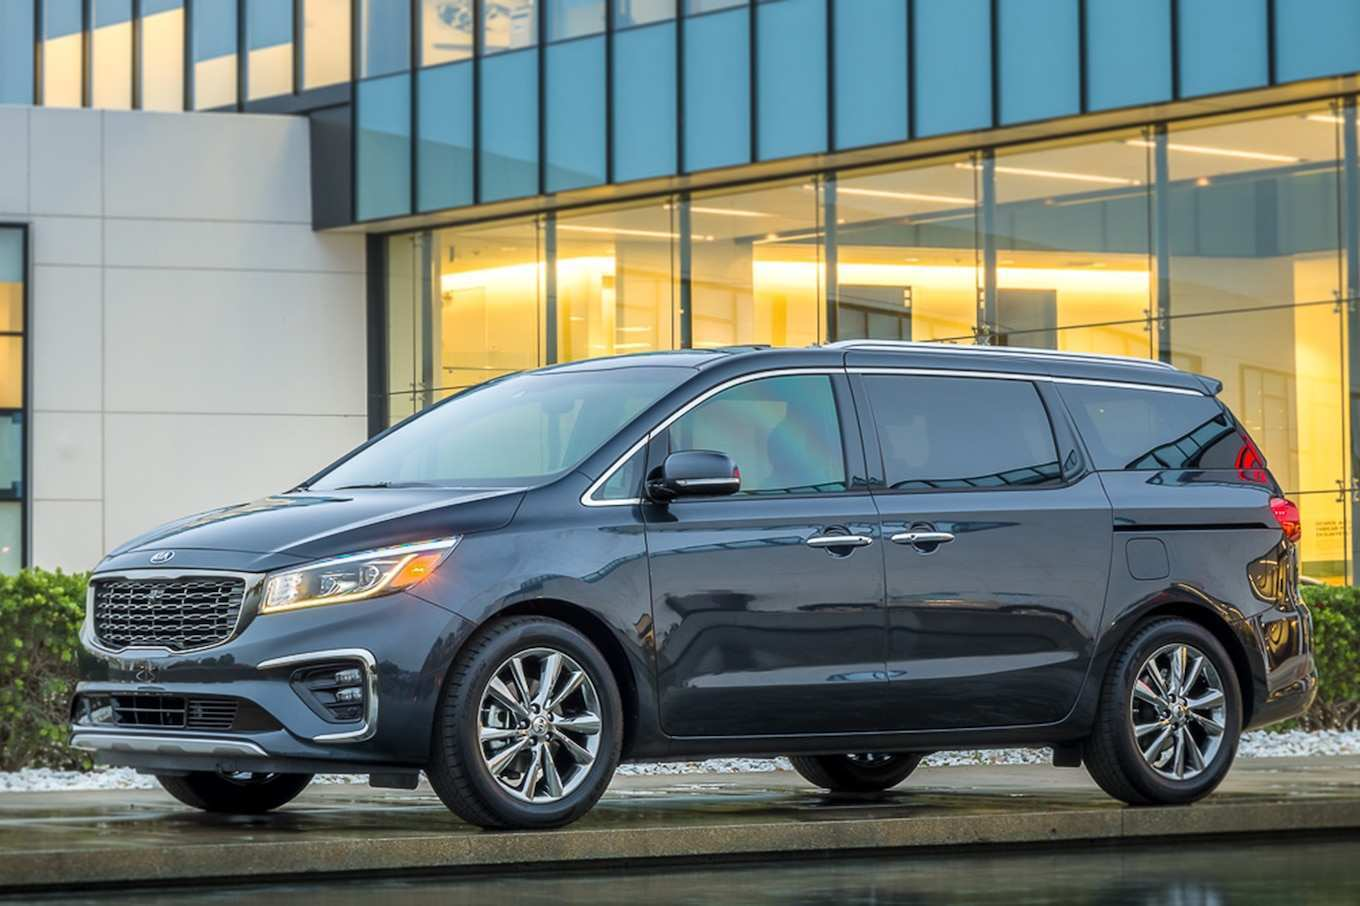 64 All New Kia Sedona 2020 Release Date And Concept